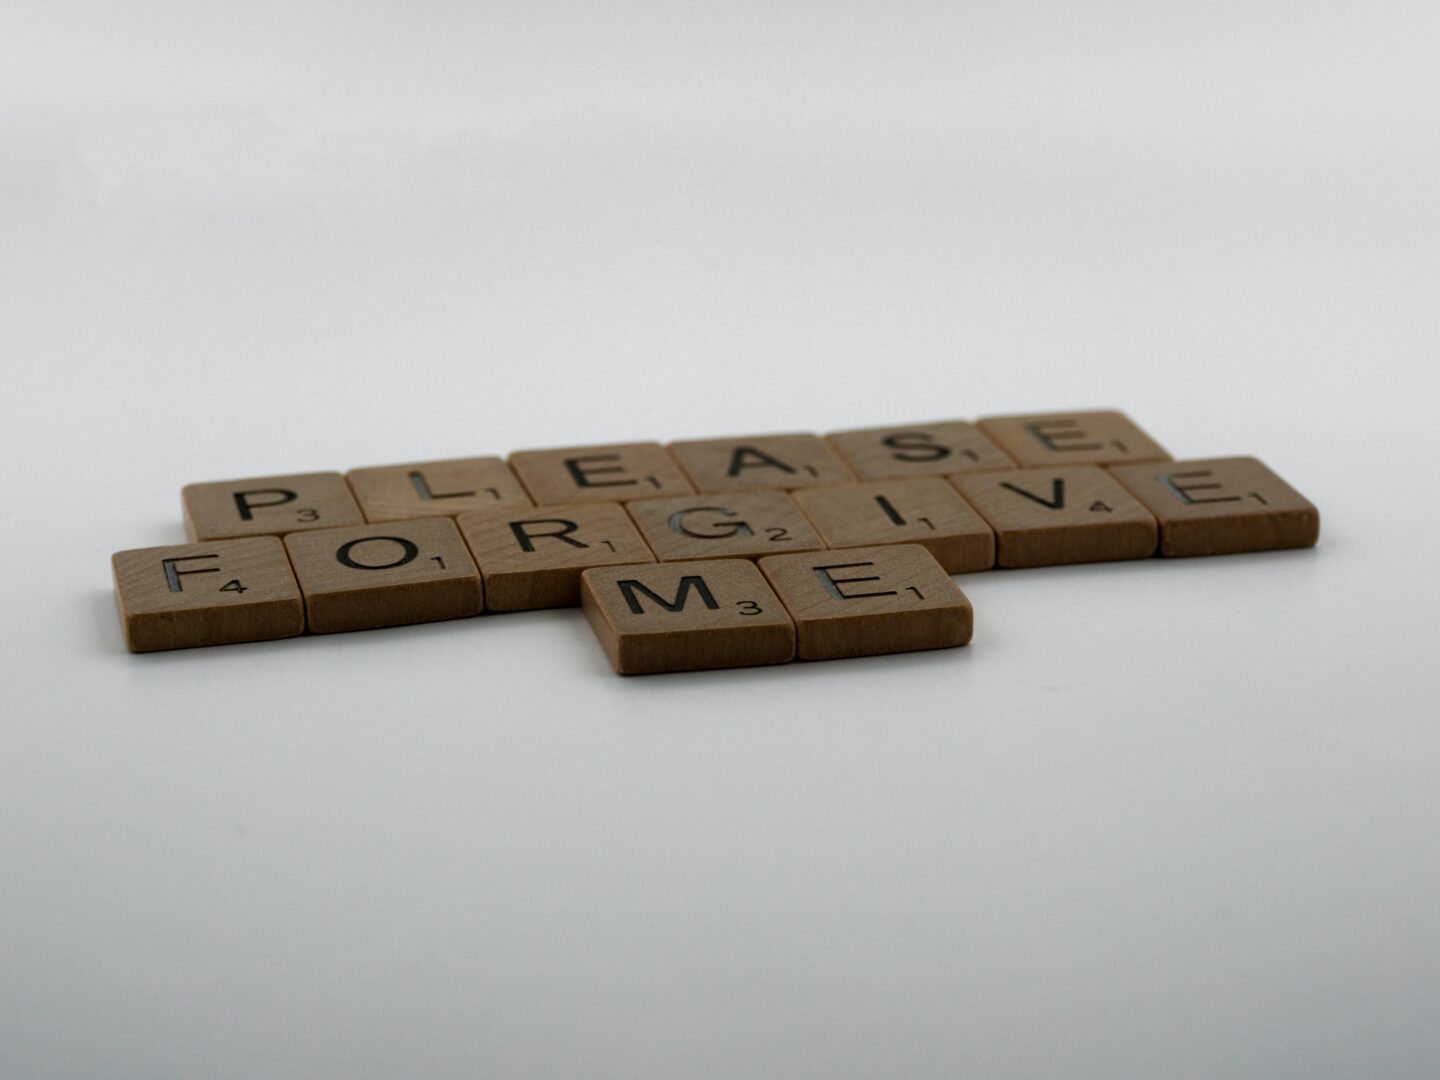 forgiveness, the secret of a peaceful life how to forgive